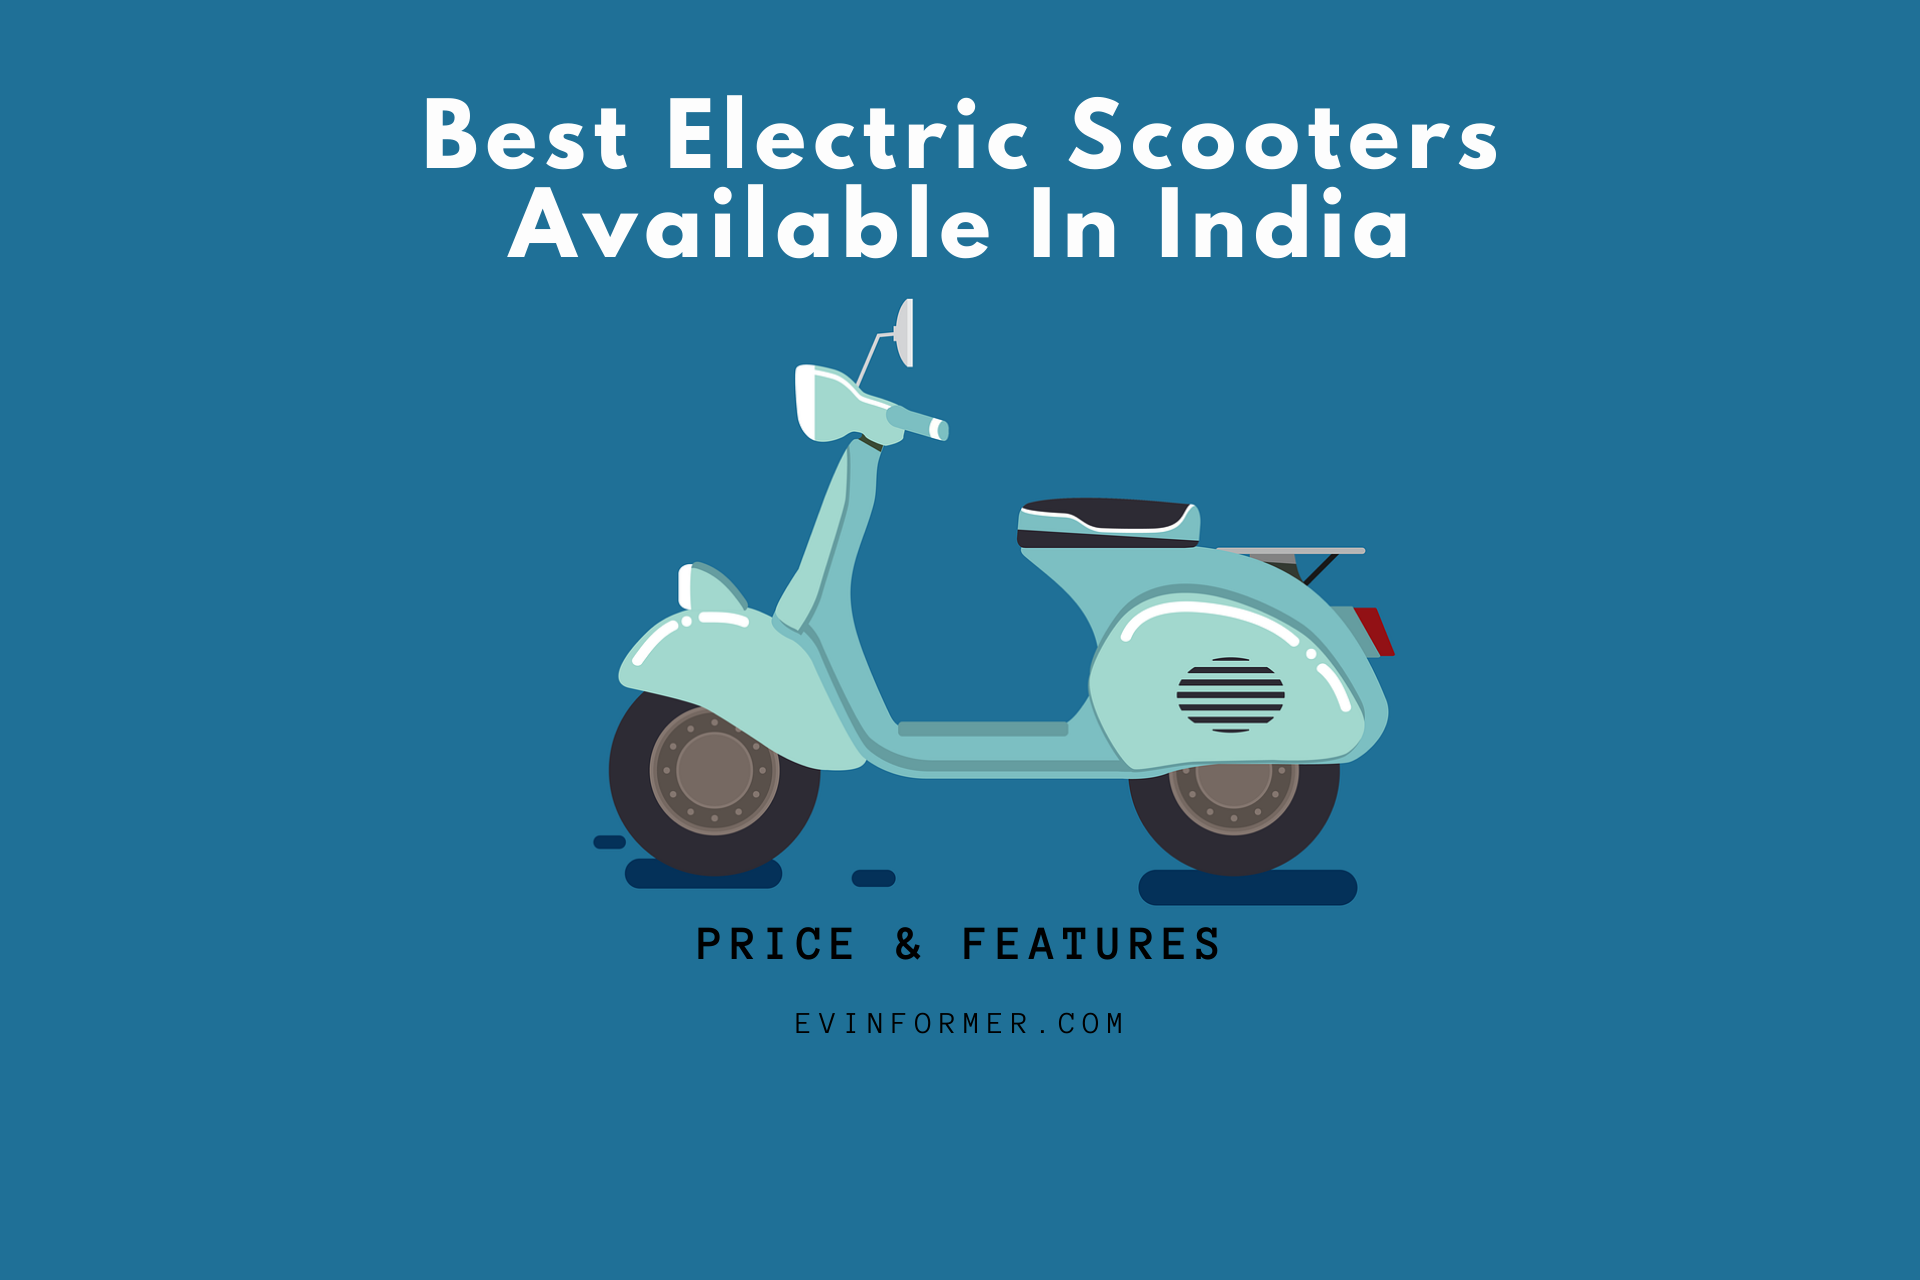 Best Electric Scooters Available In India